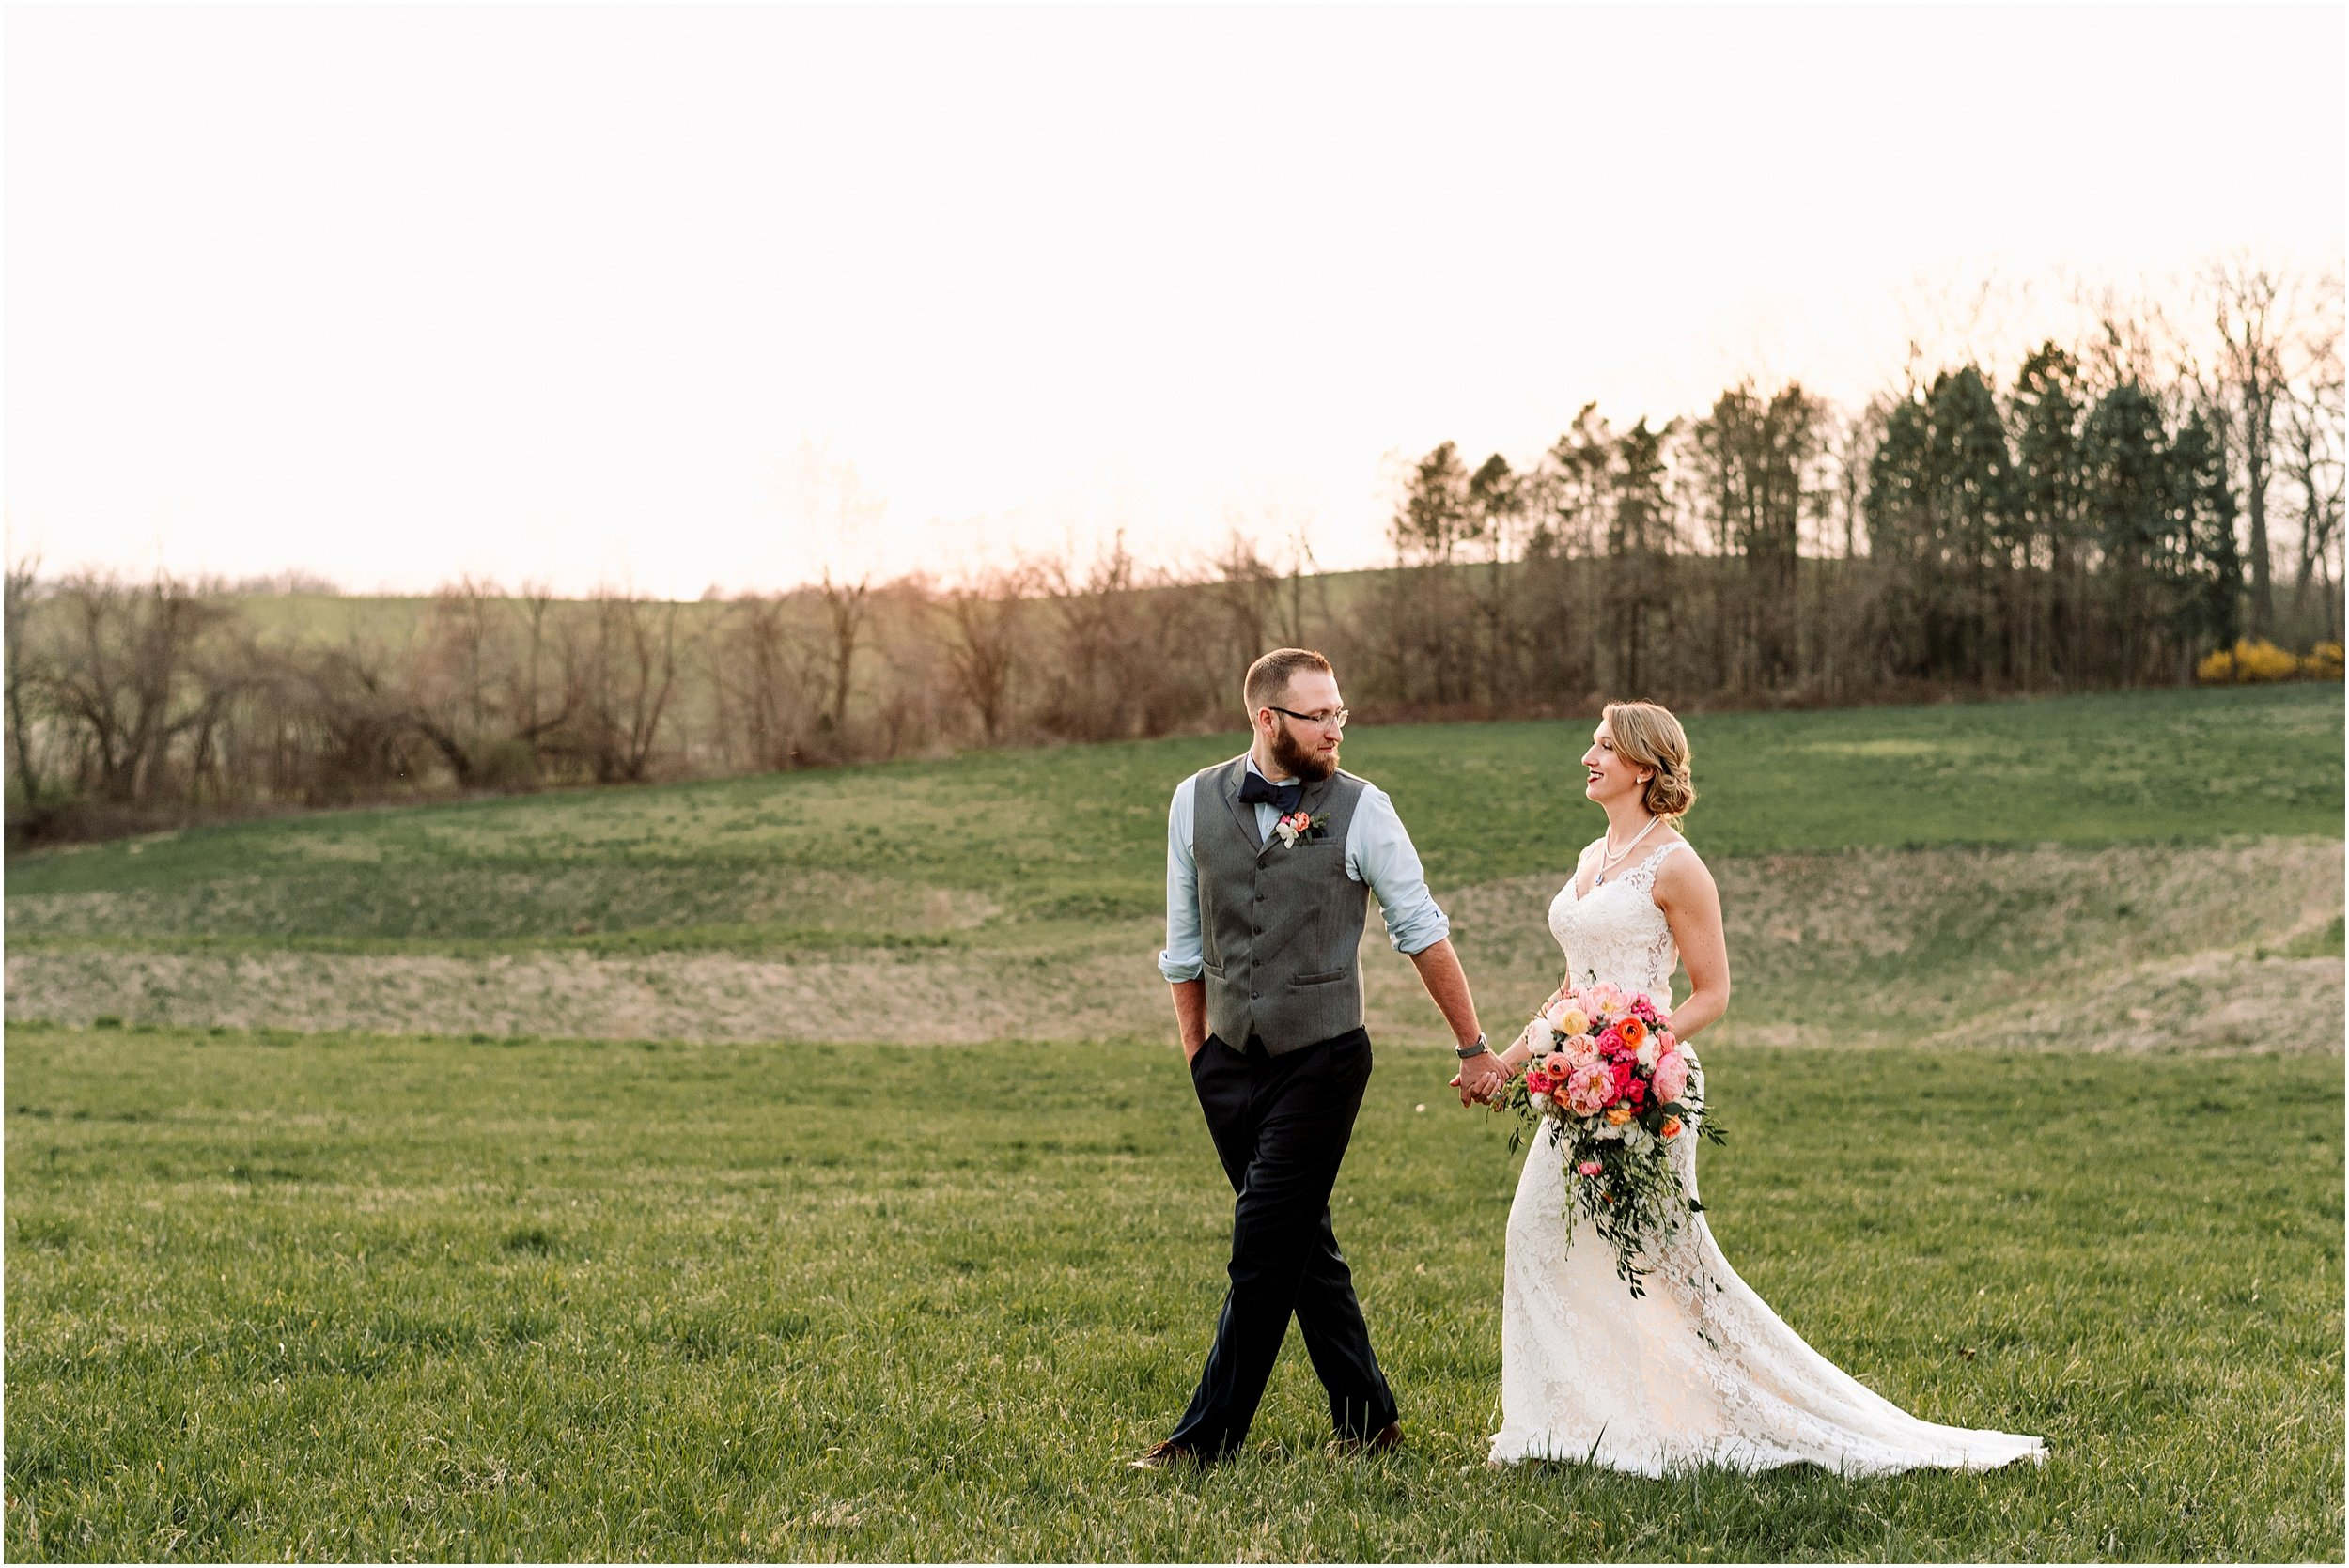 hannah leigh photography weddings_2687.jpg